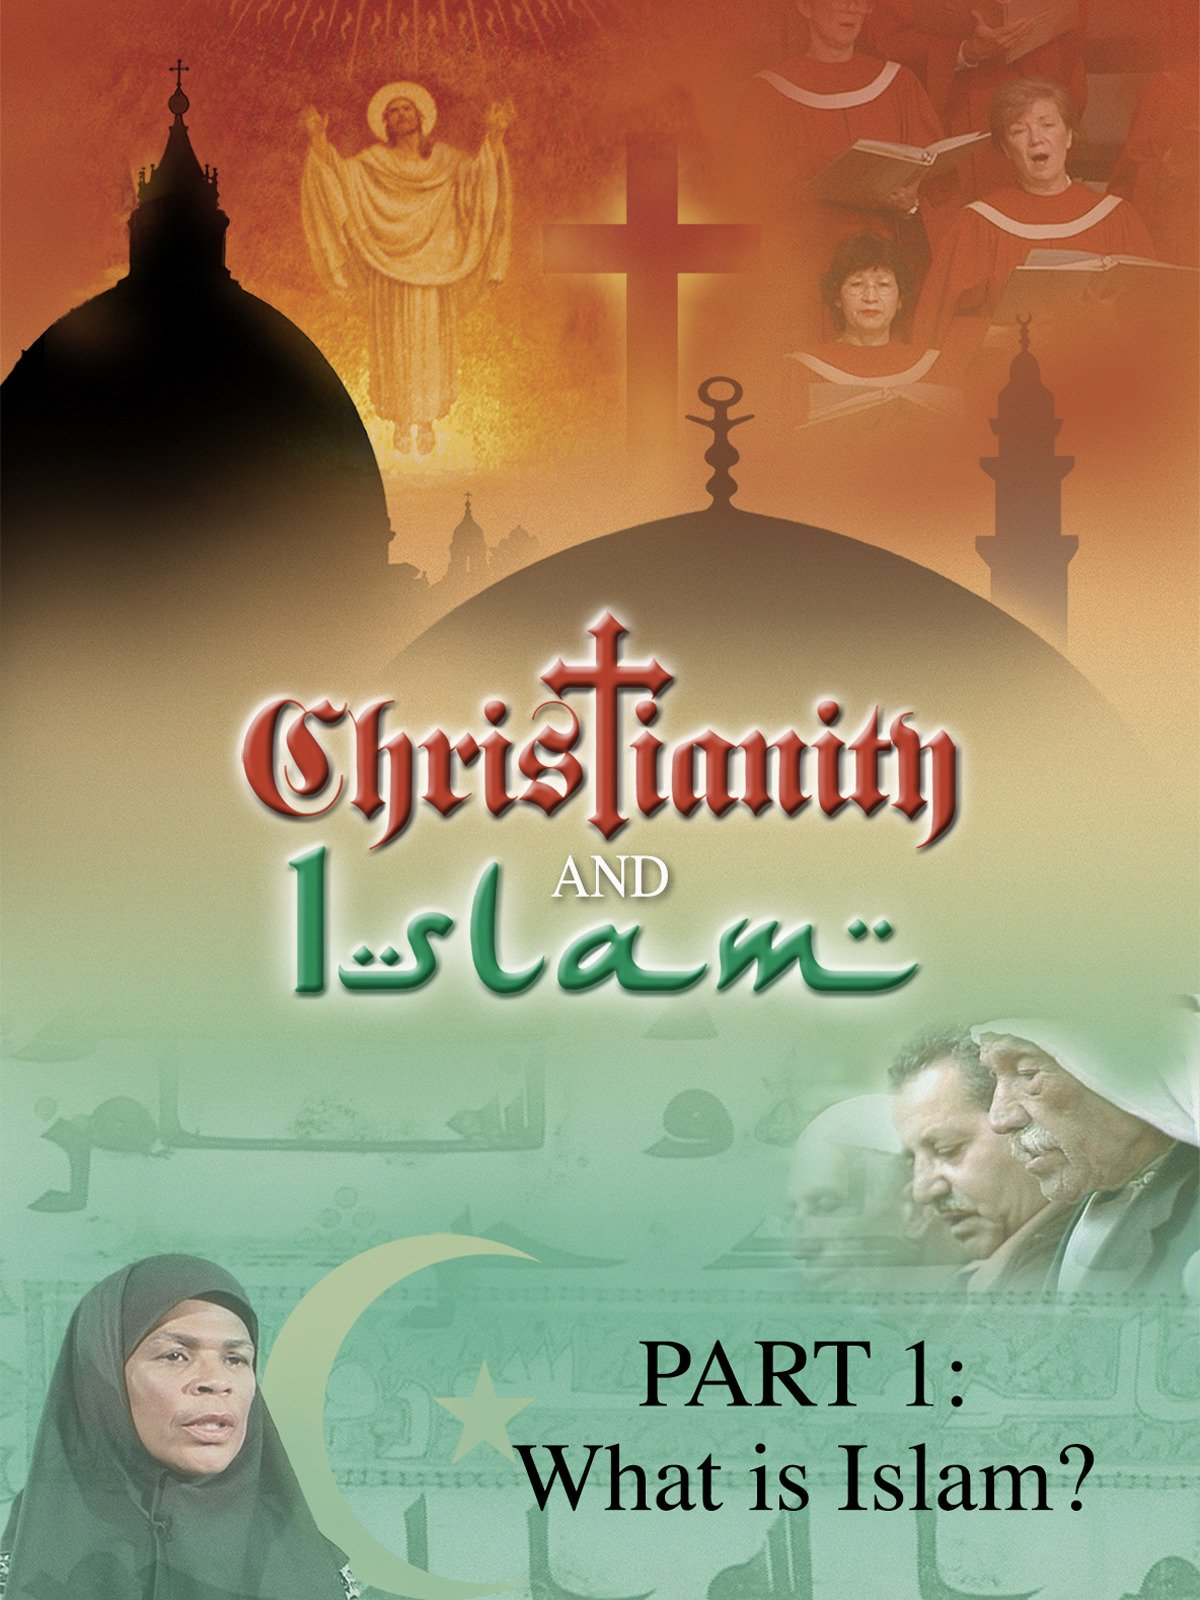 Christianity and Islam Part 1: What is Islam?